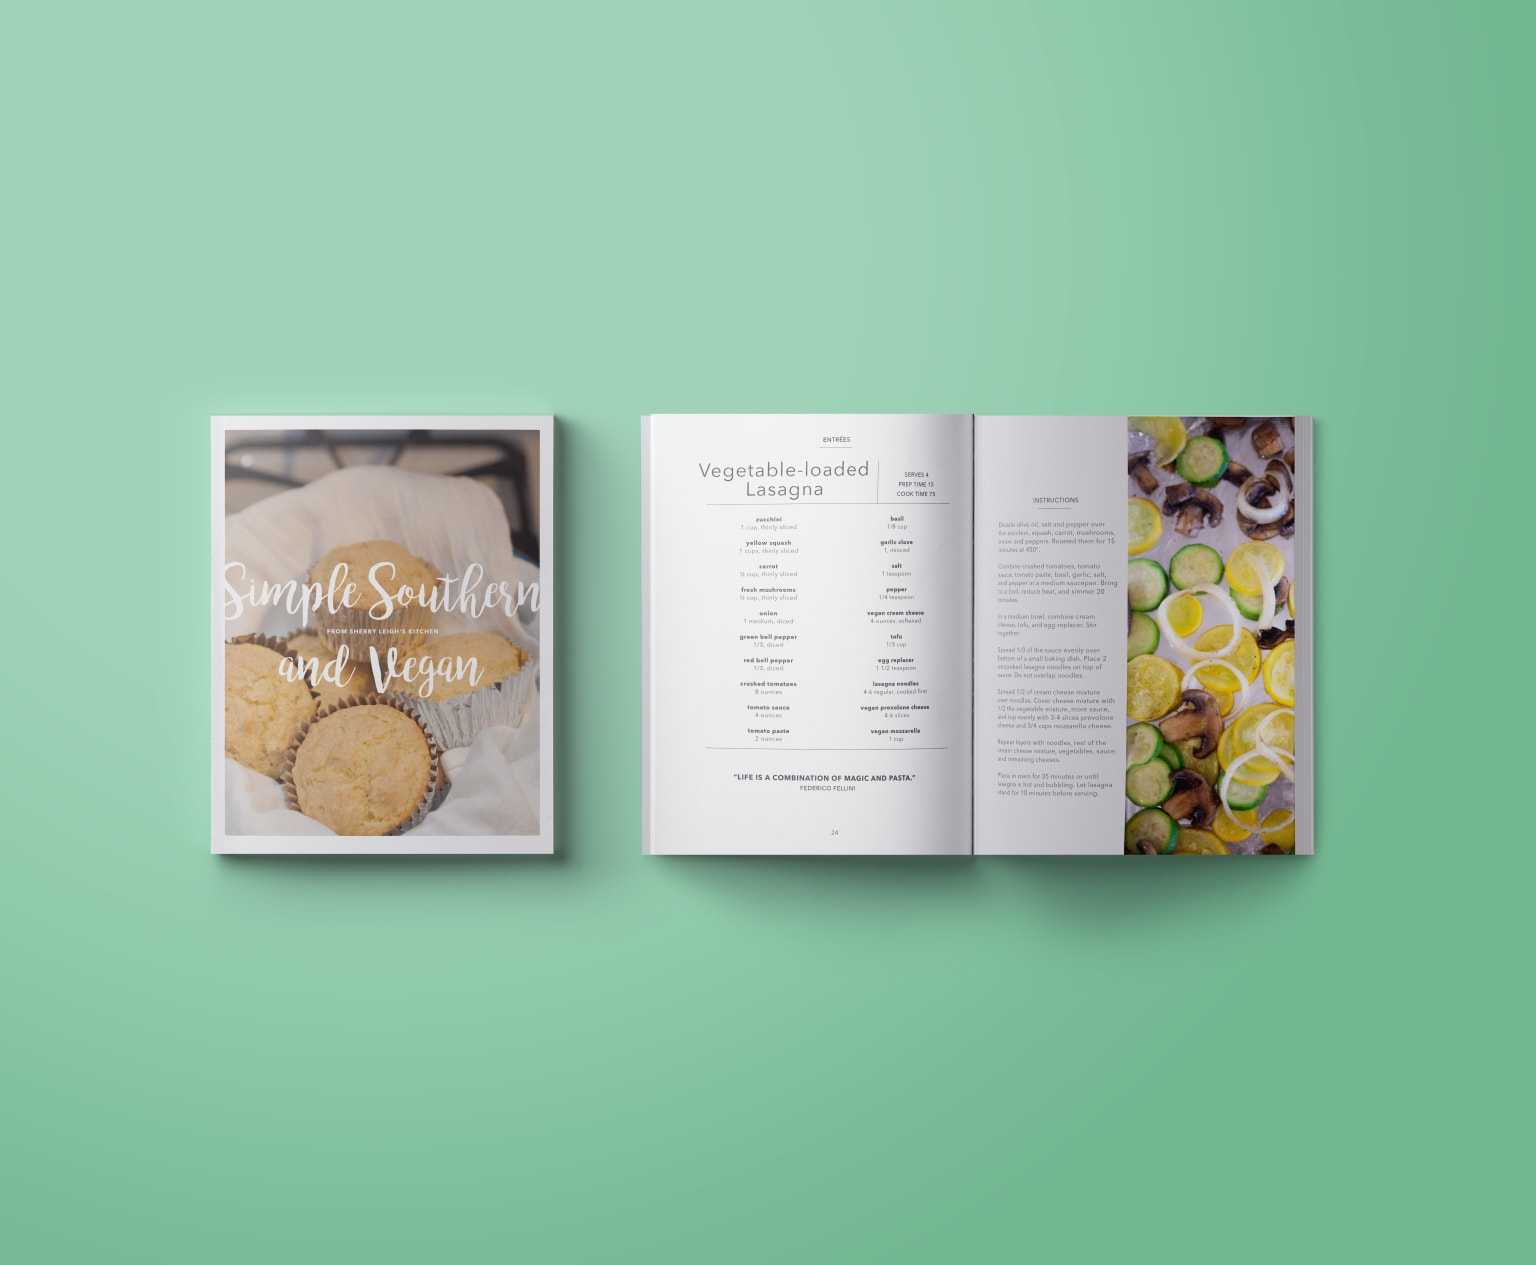 Simple Southern and Vegan Cookbook